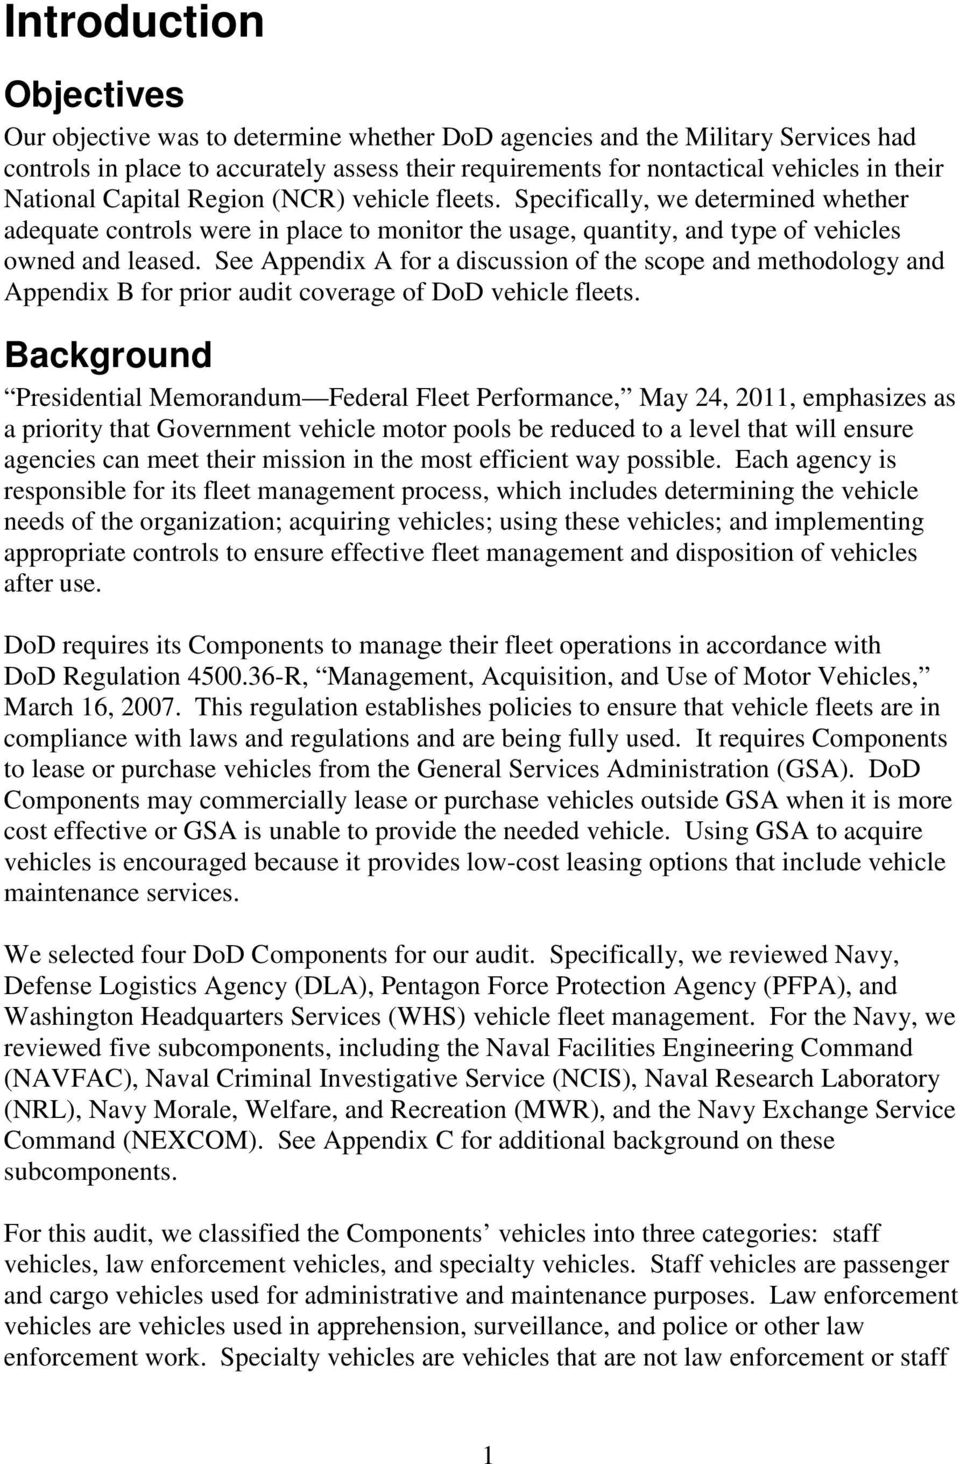 See Appendix A for a discussion of the scope and methodology and Appendix B for prior audit coverage of DoD vehicle fleets.